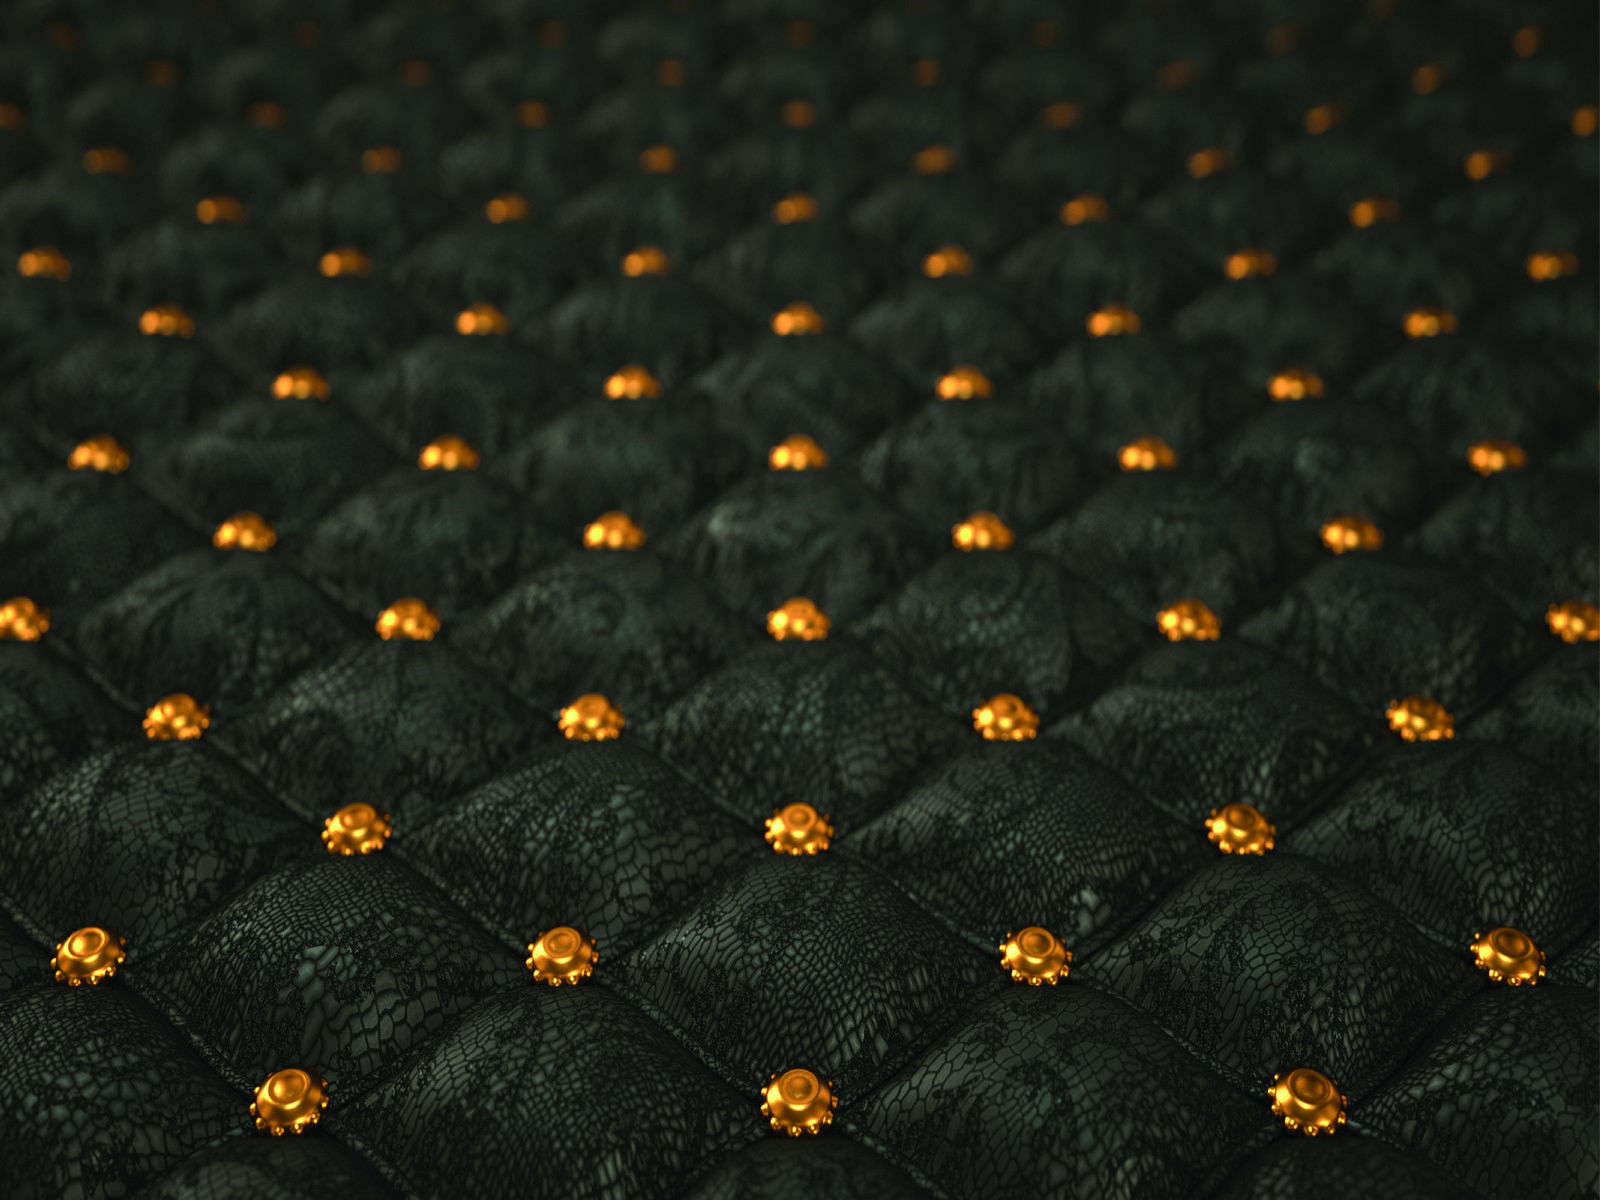 Black Puff PPT Backgrounds